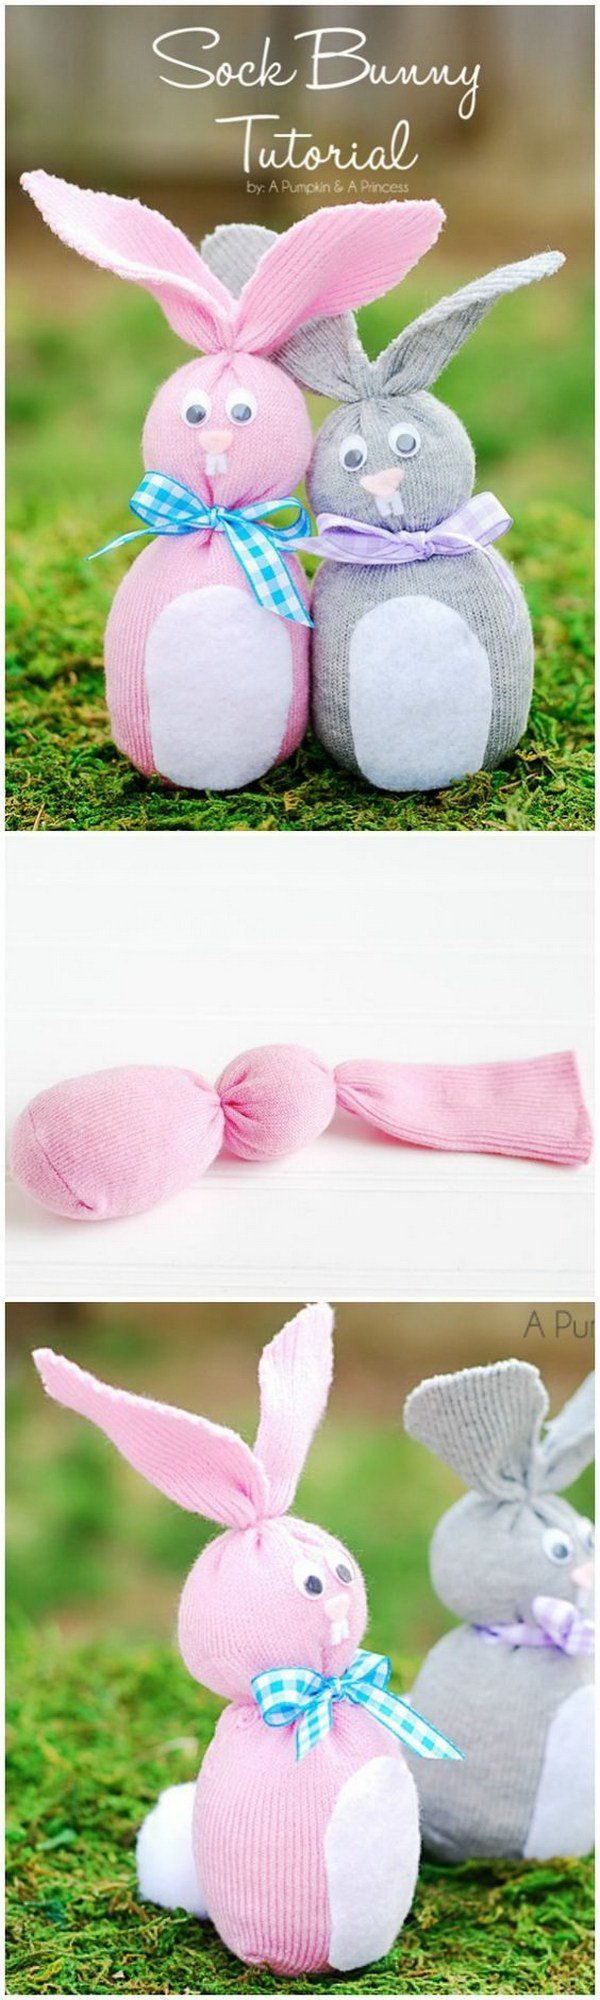 20 Last Minute DIY Easter Ideas...Quick And Easy Sock Easter Bunny Tutorial